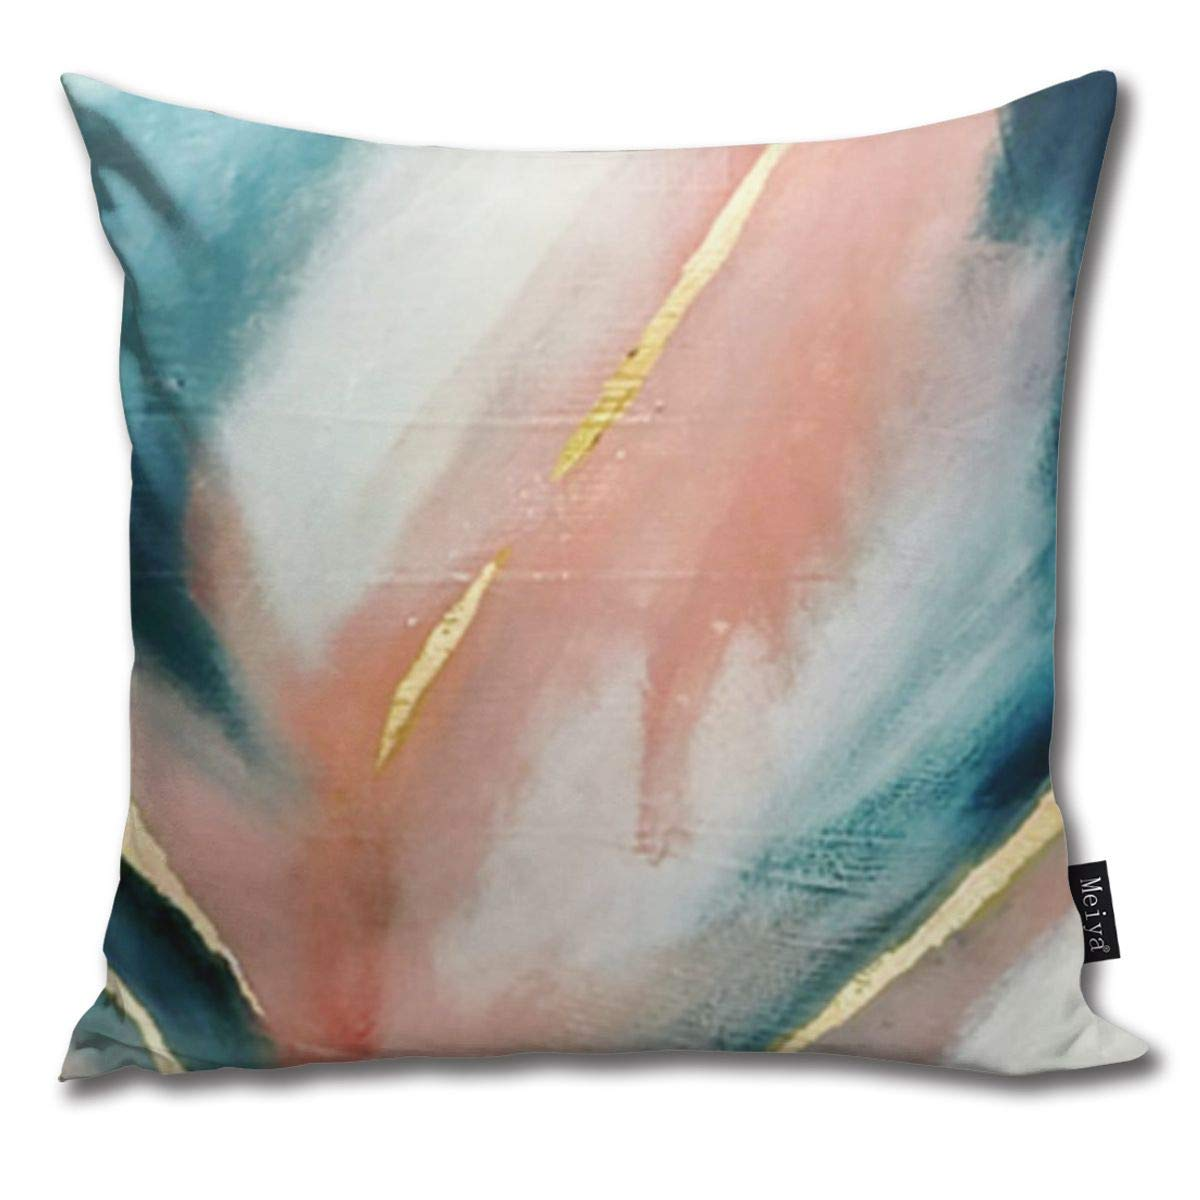 and Gold by Alyssa Hamilton Art Pillowcase Home Life Cotton Cushion Case 18 x 18 inches Blue Celestial A Minimal Abstract Mixed Media Piece in Pink